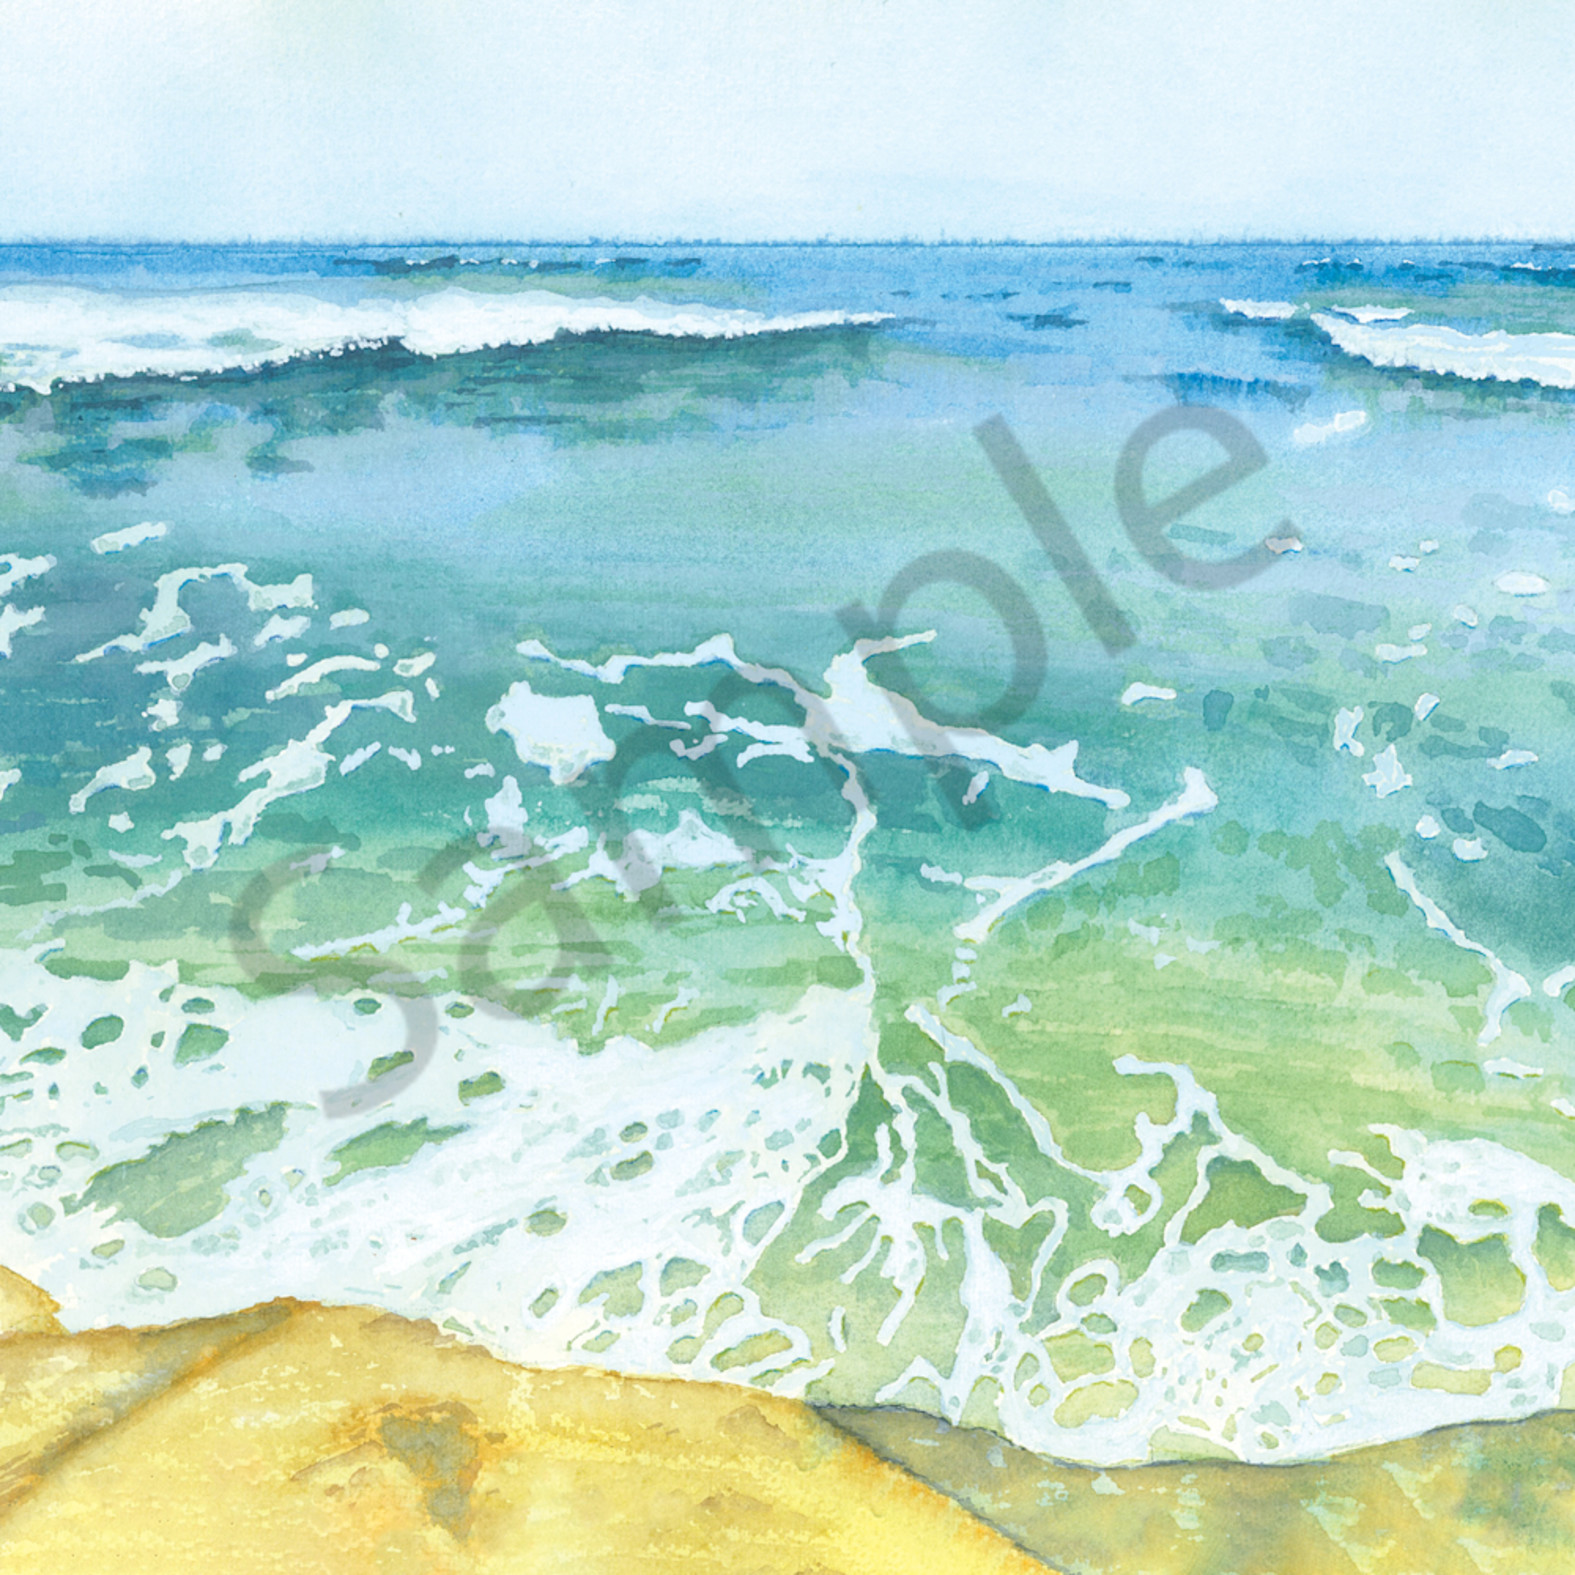 Water 11 2020 foamy water ocean waves   monica color edit   original mfahmj